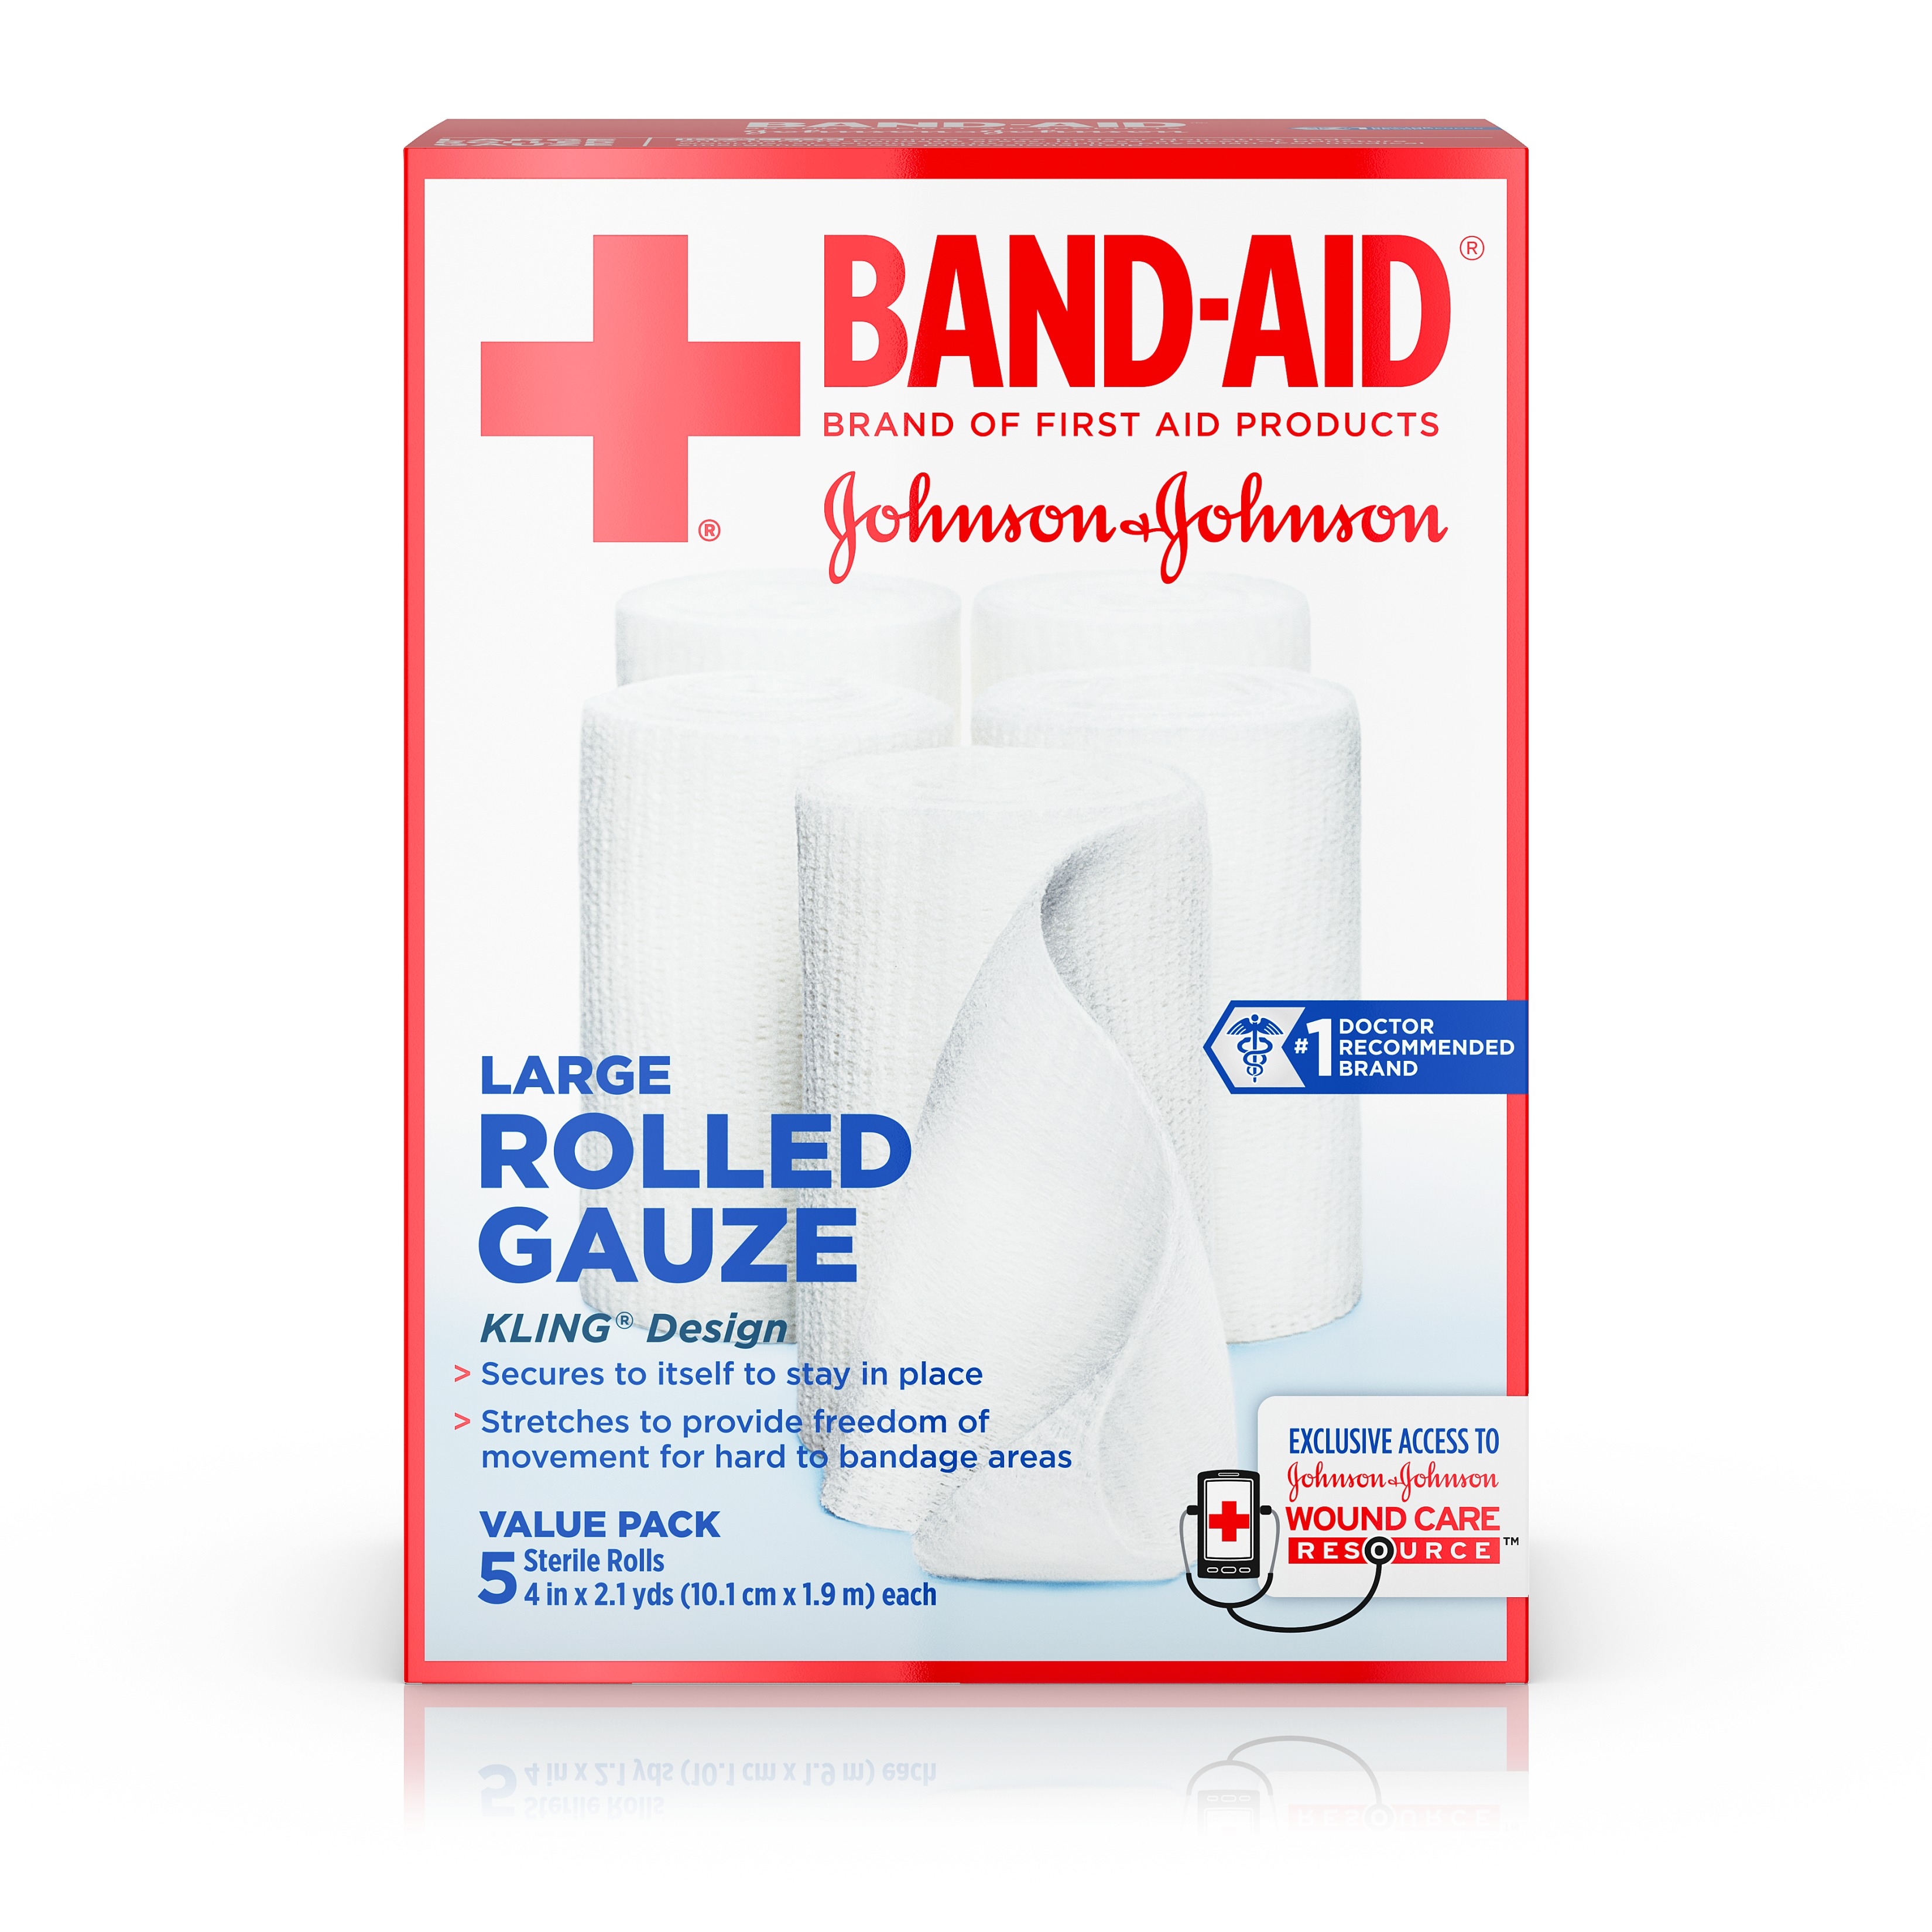 Band-Aid Brand of First Aid Products Rolled Gauze, 4Inches by 2.1 Yards, 5 Count Value Pack by Johnson and Johnson Dressing Pads